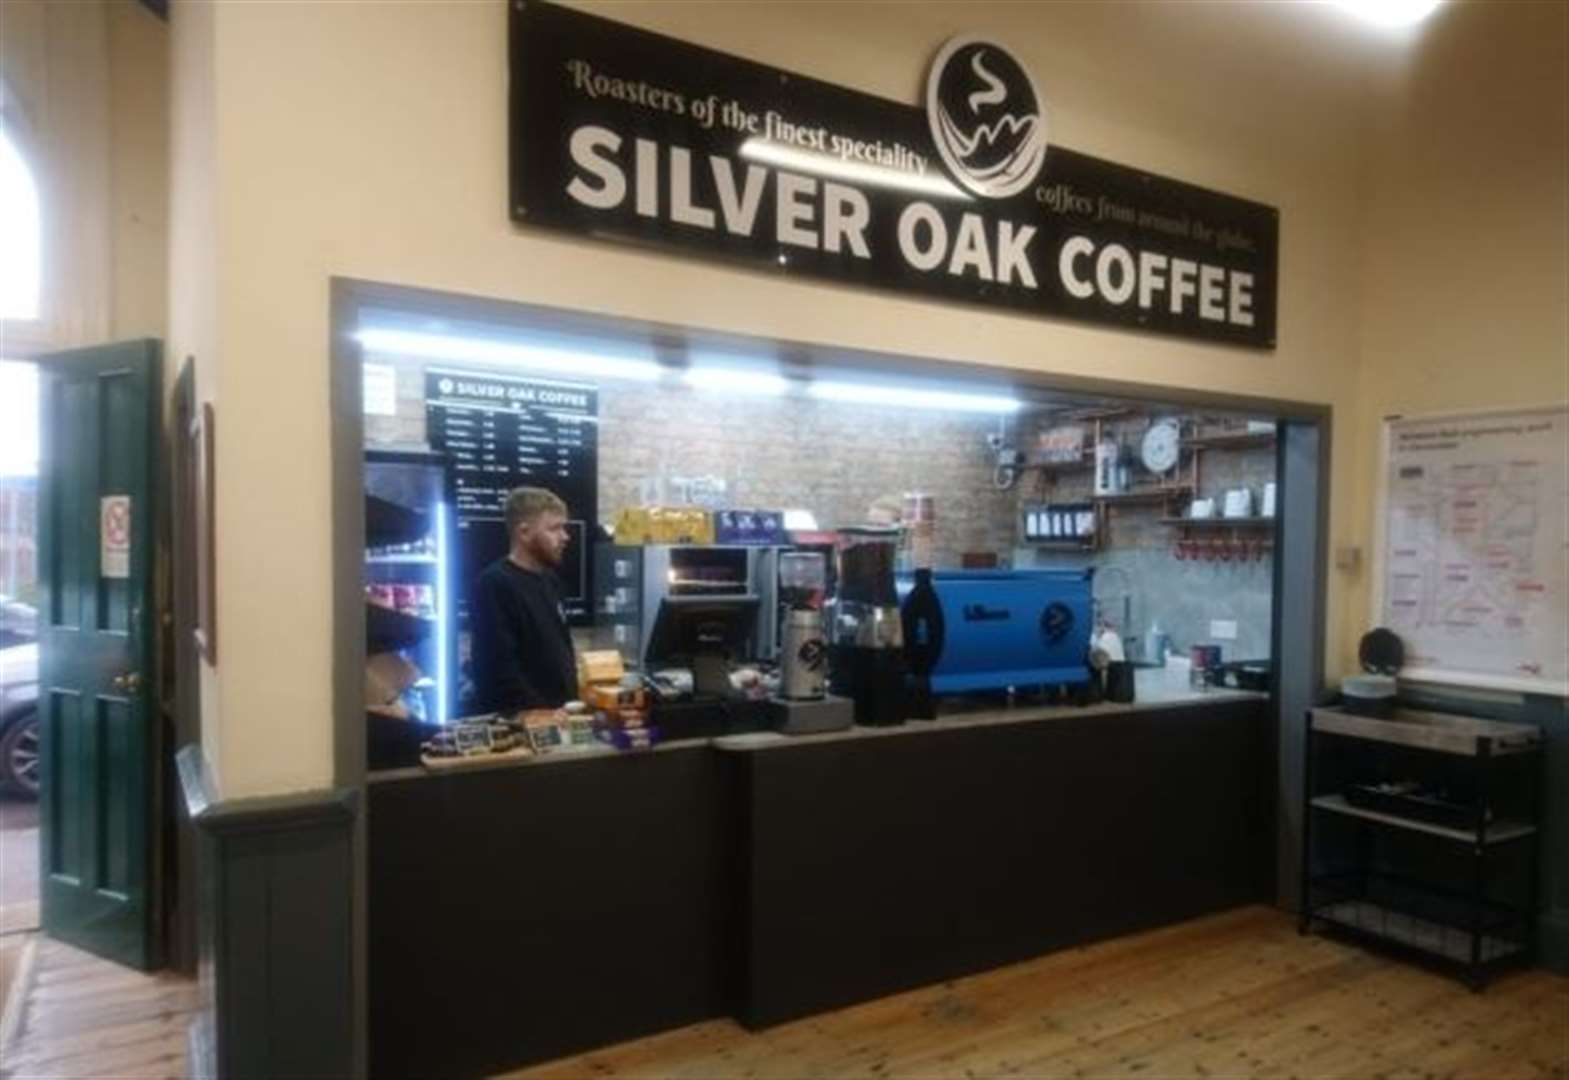 Specialist coffee firm Silver Oak is set to open a shop on March railway station